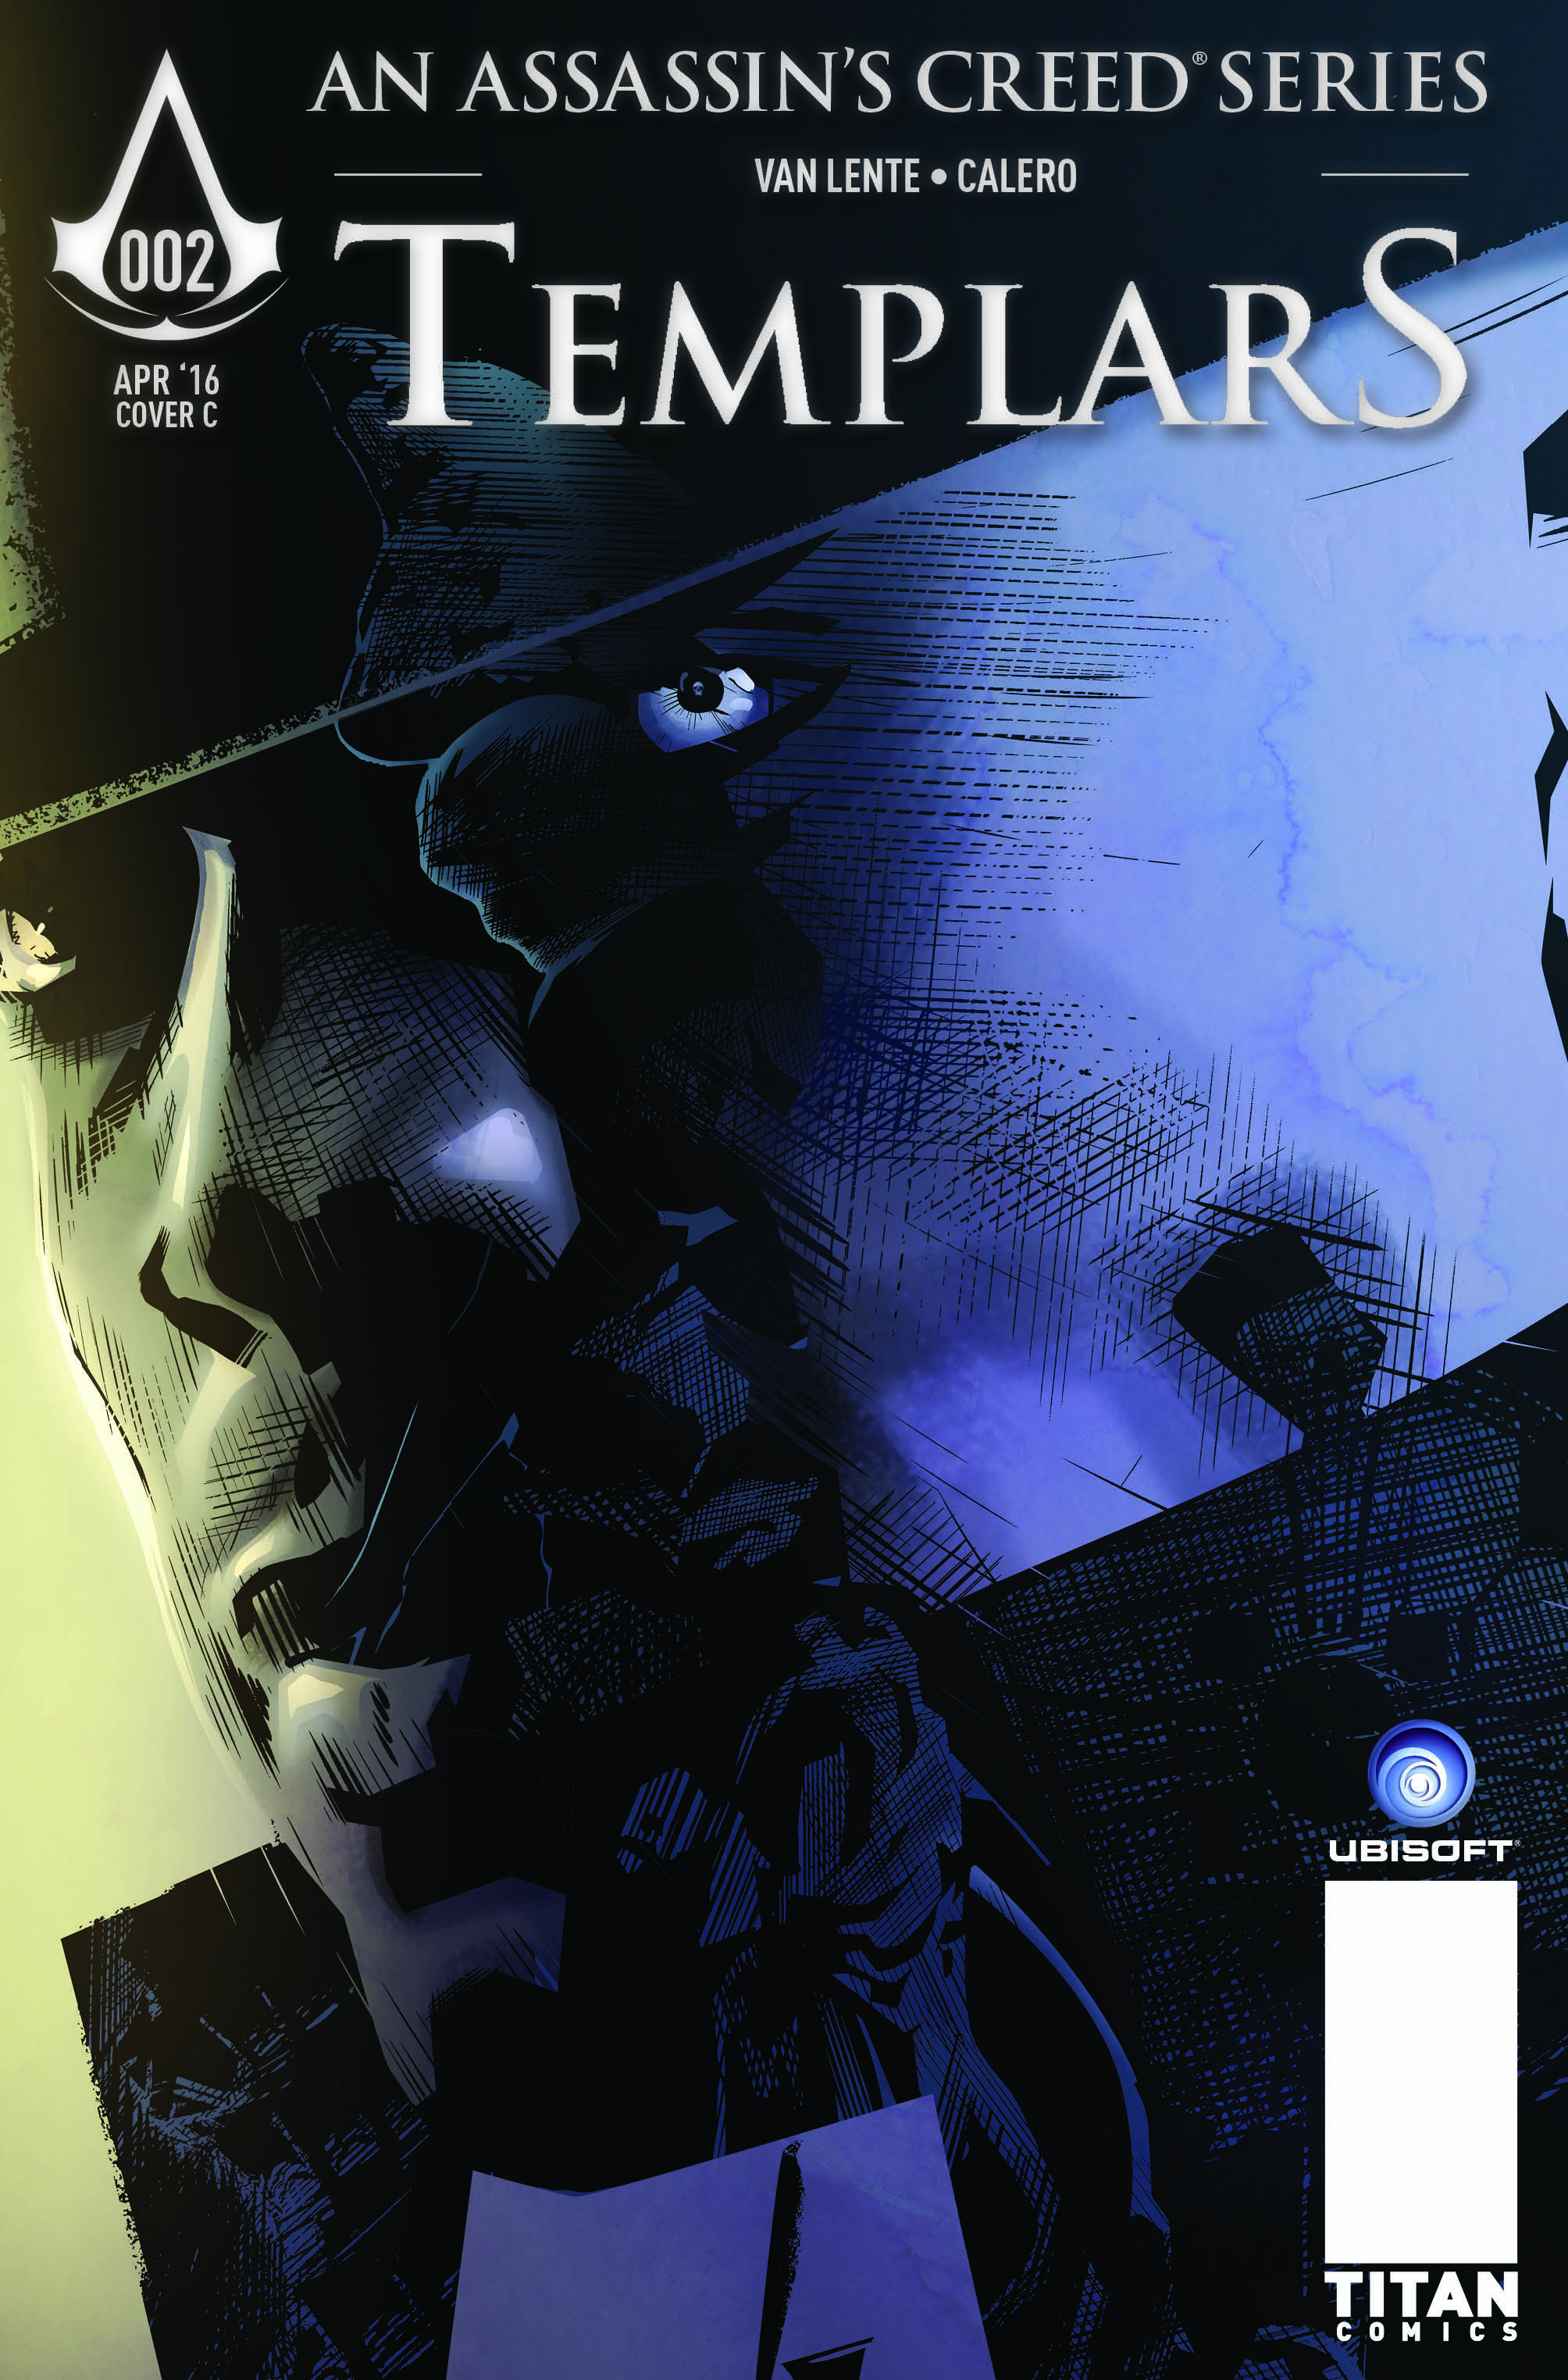 Cover B by Dennis Calero